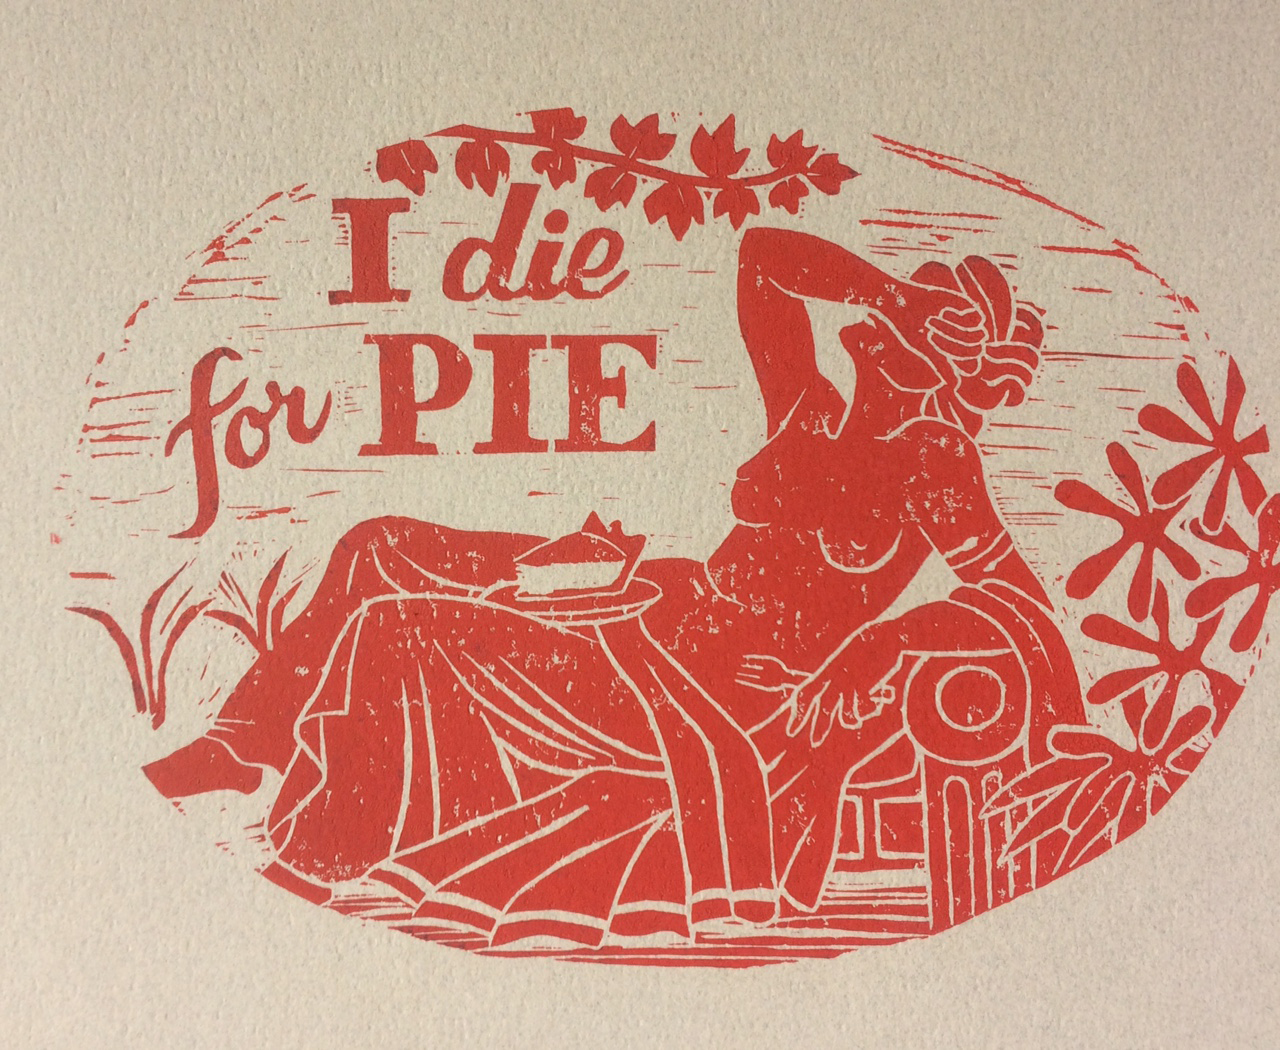 I Die for Pie                    #ID9WR